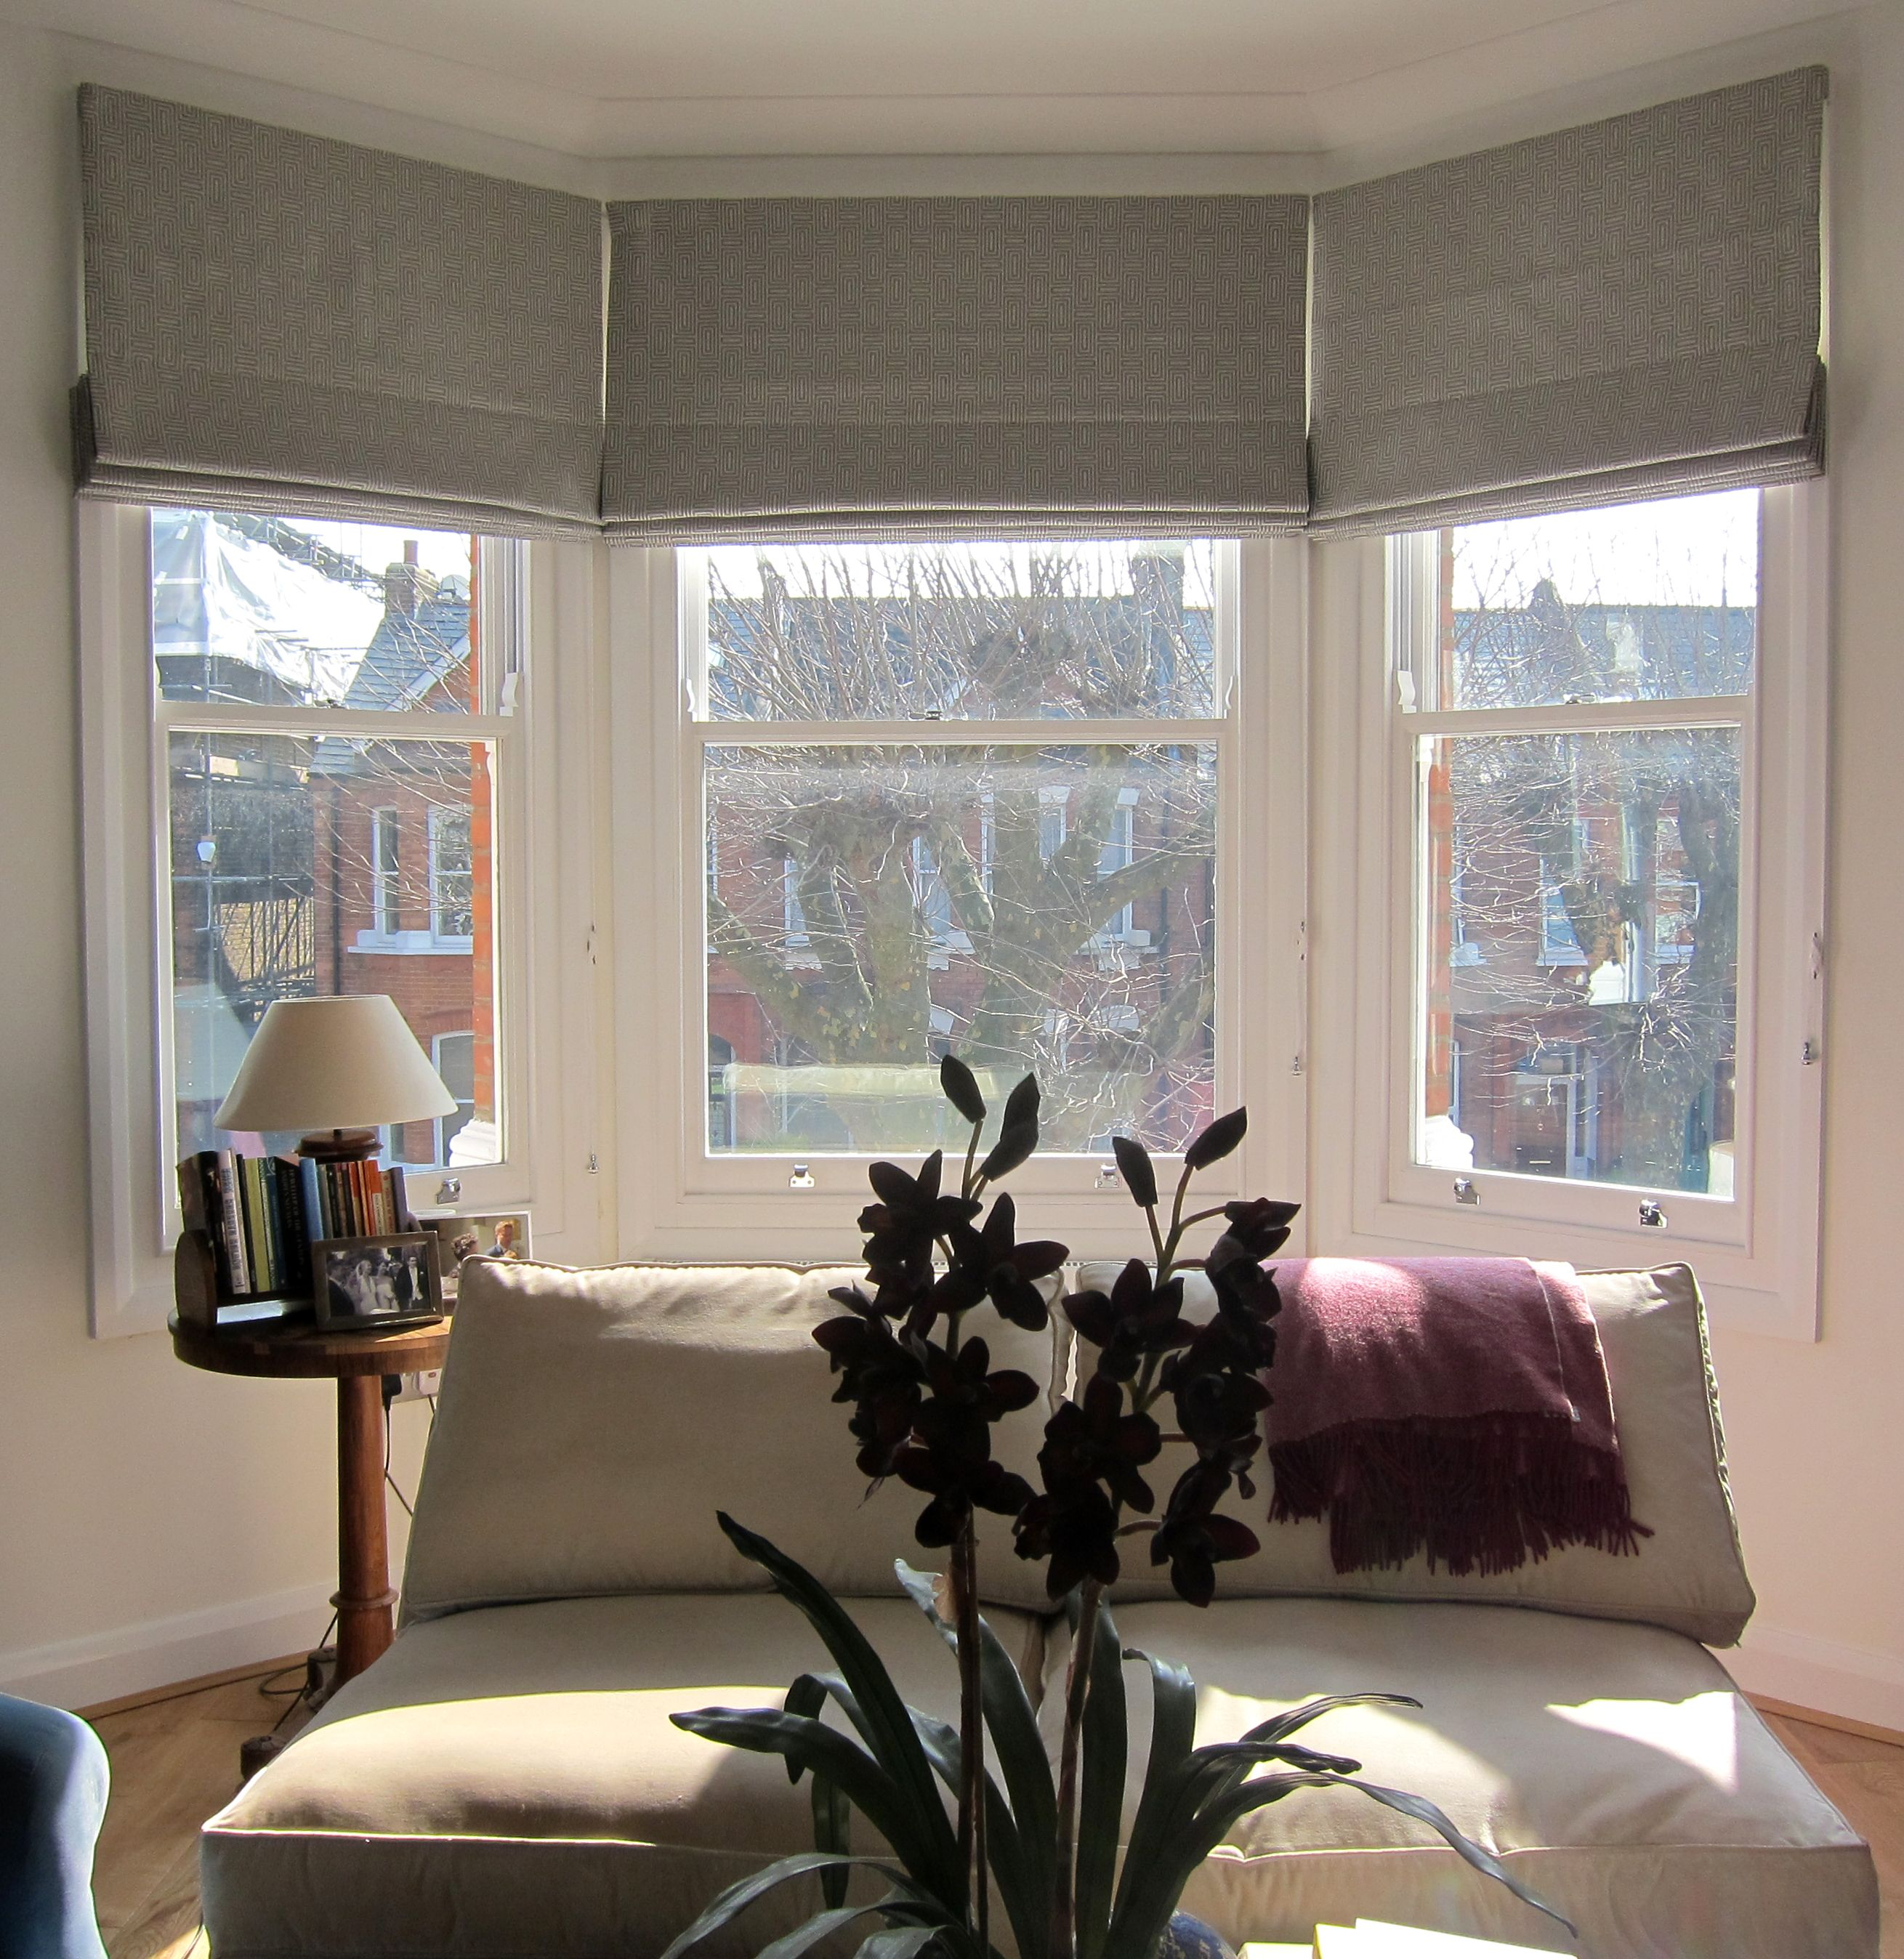 Bay window blinds - Geometric Patterned Roman Blinds In A Bay Window Could Work In The Bedroom Bay Window